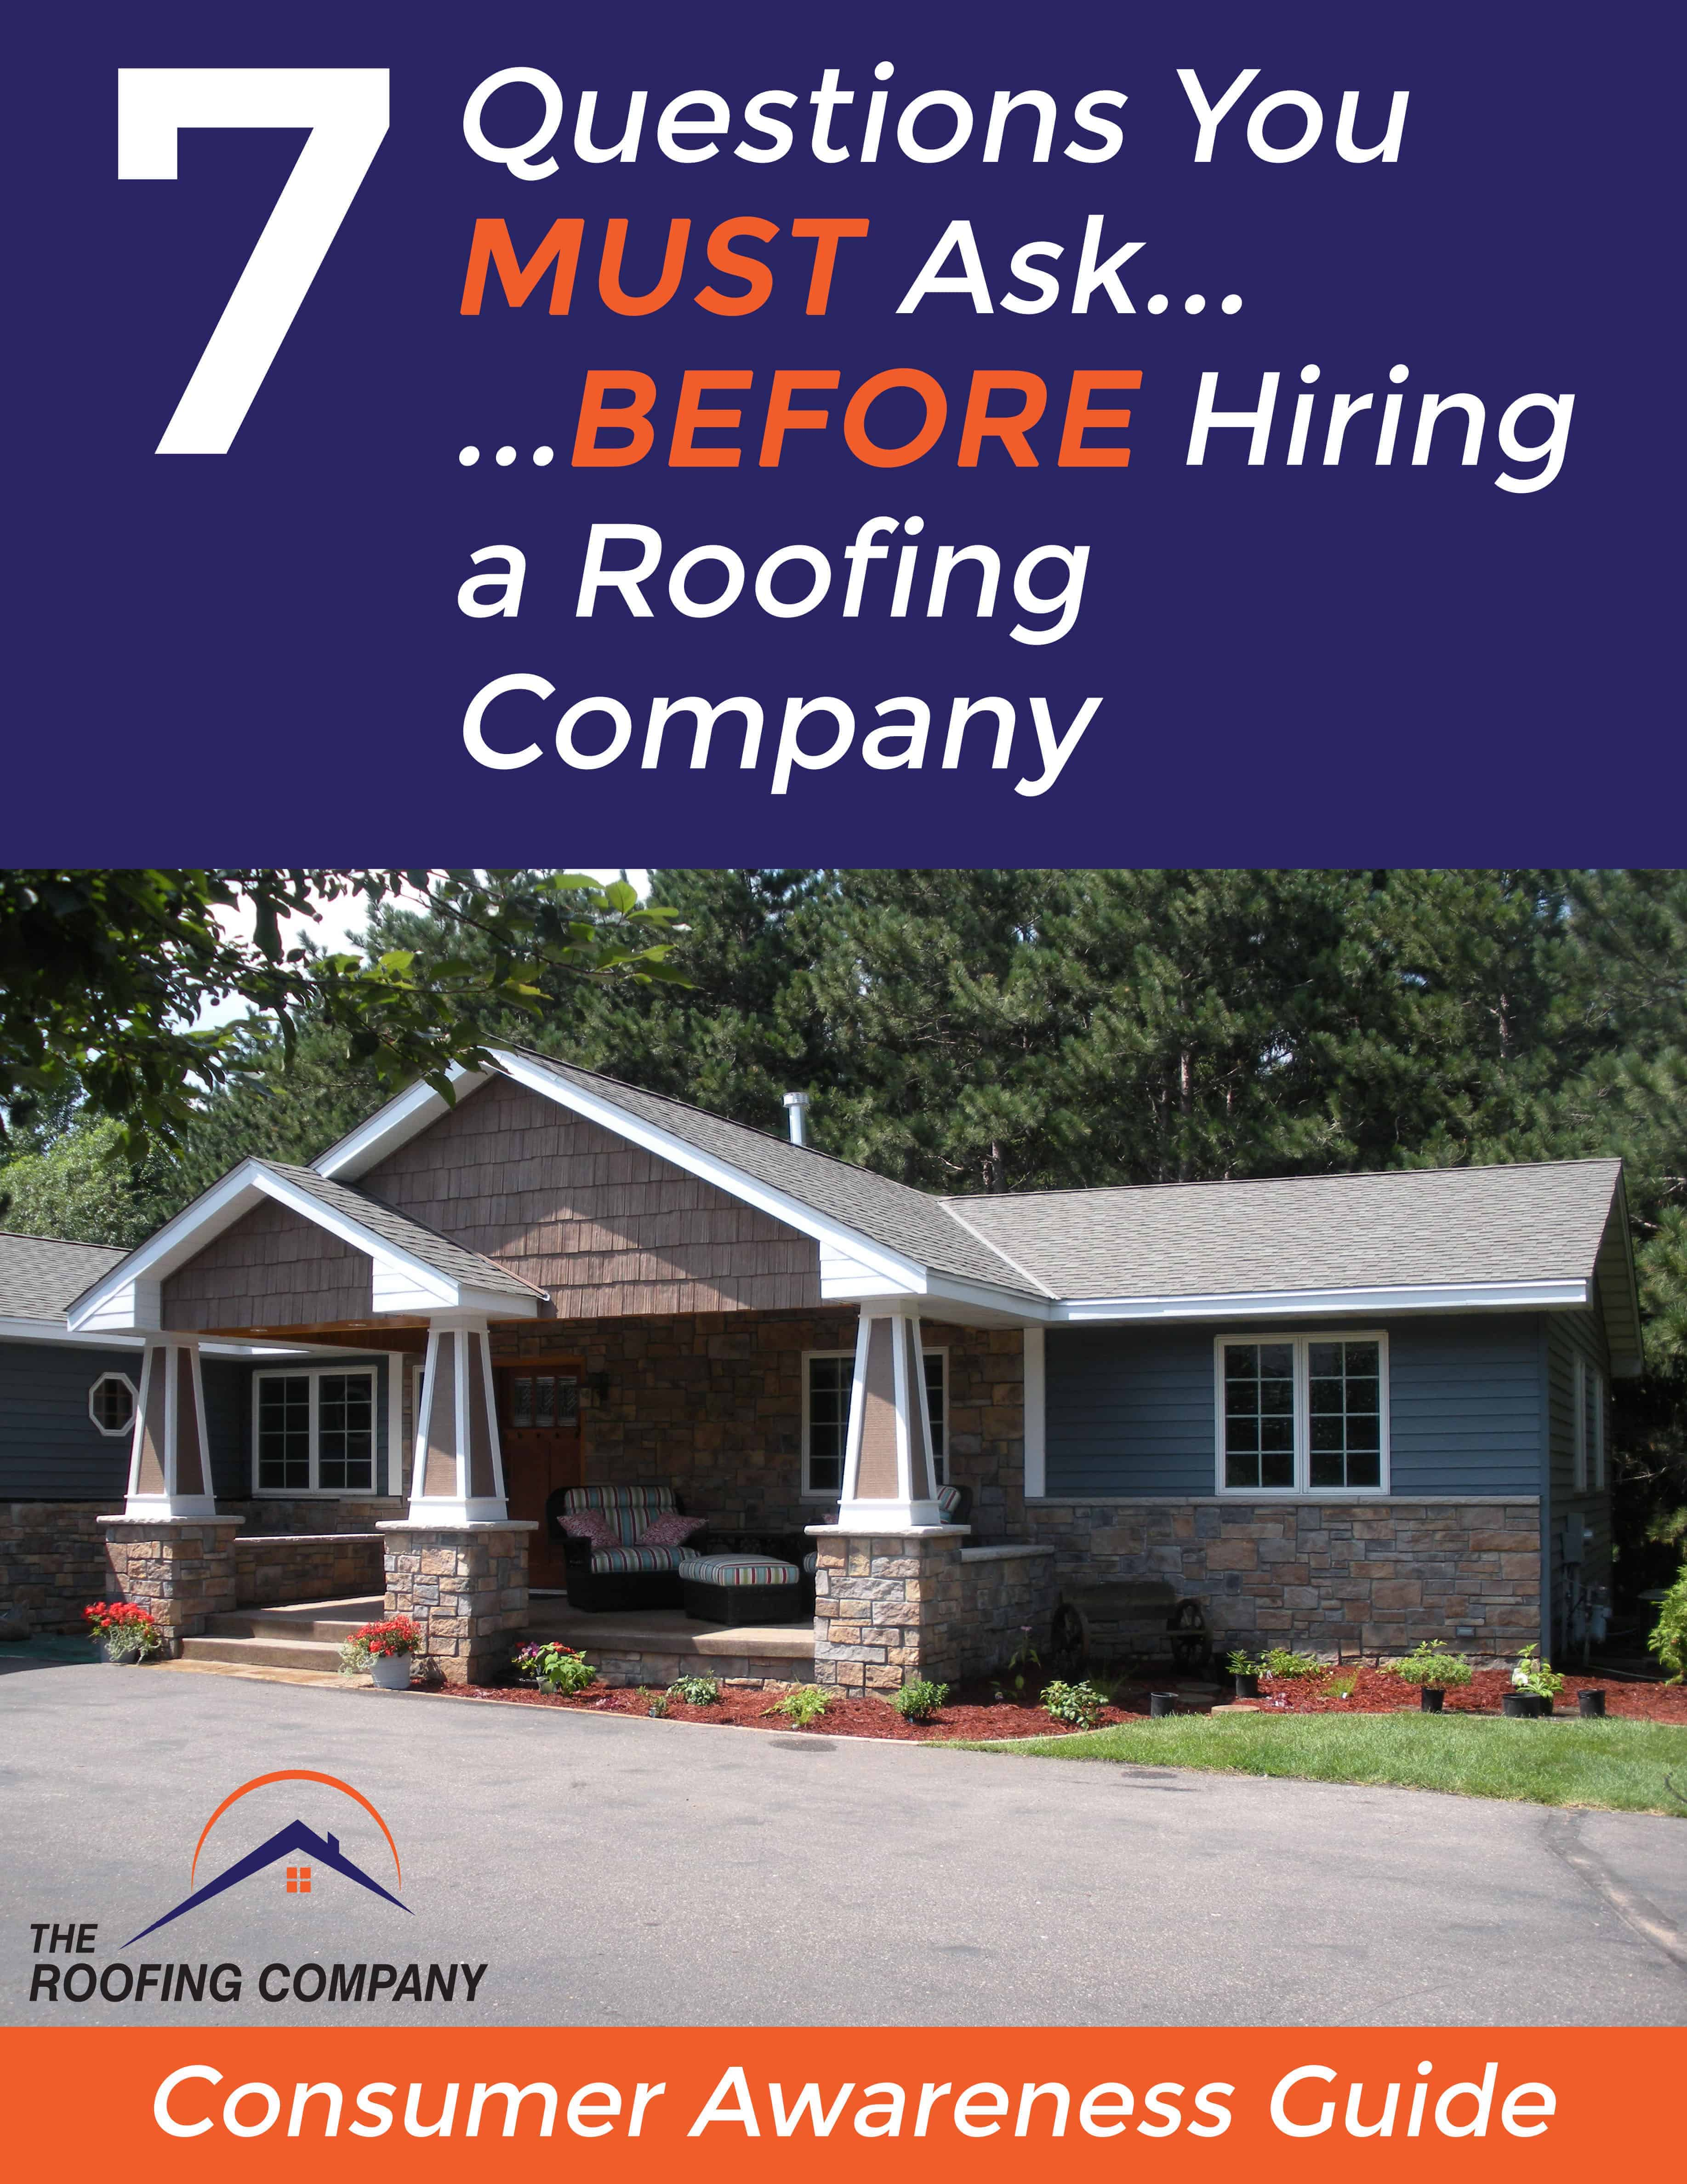 7 Questions Report Cover - Roofing Company Brantford ON - Roofing Contractor